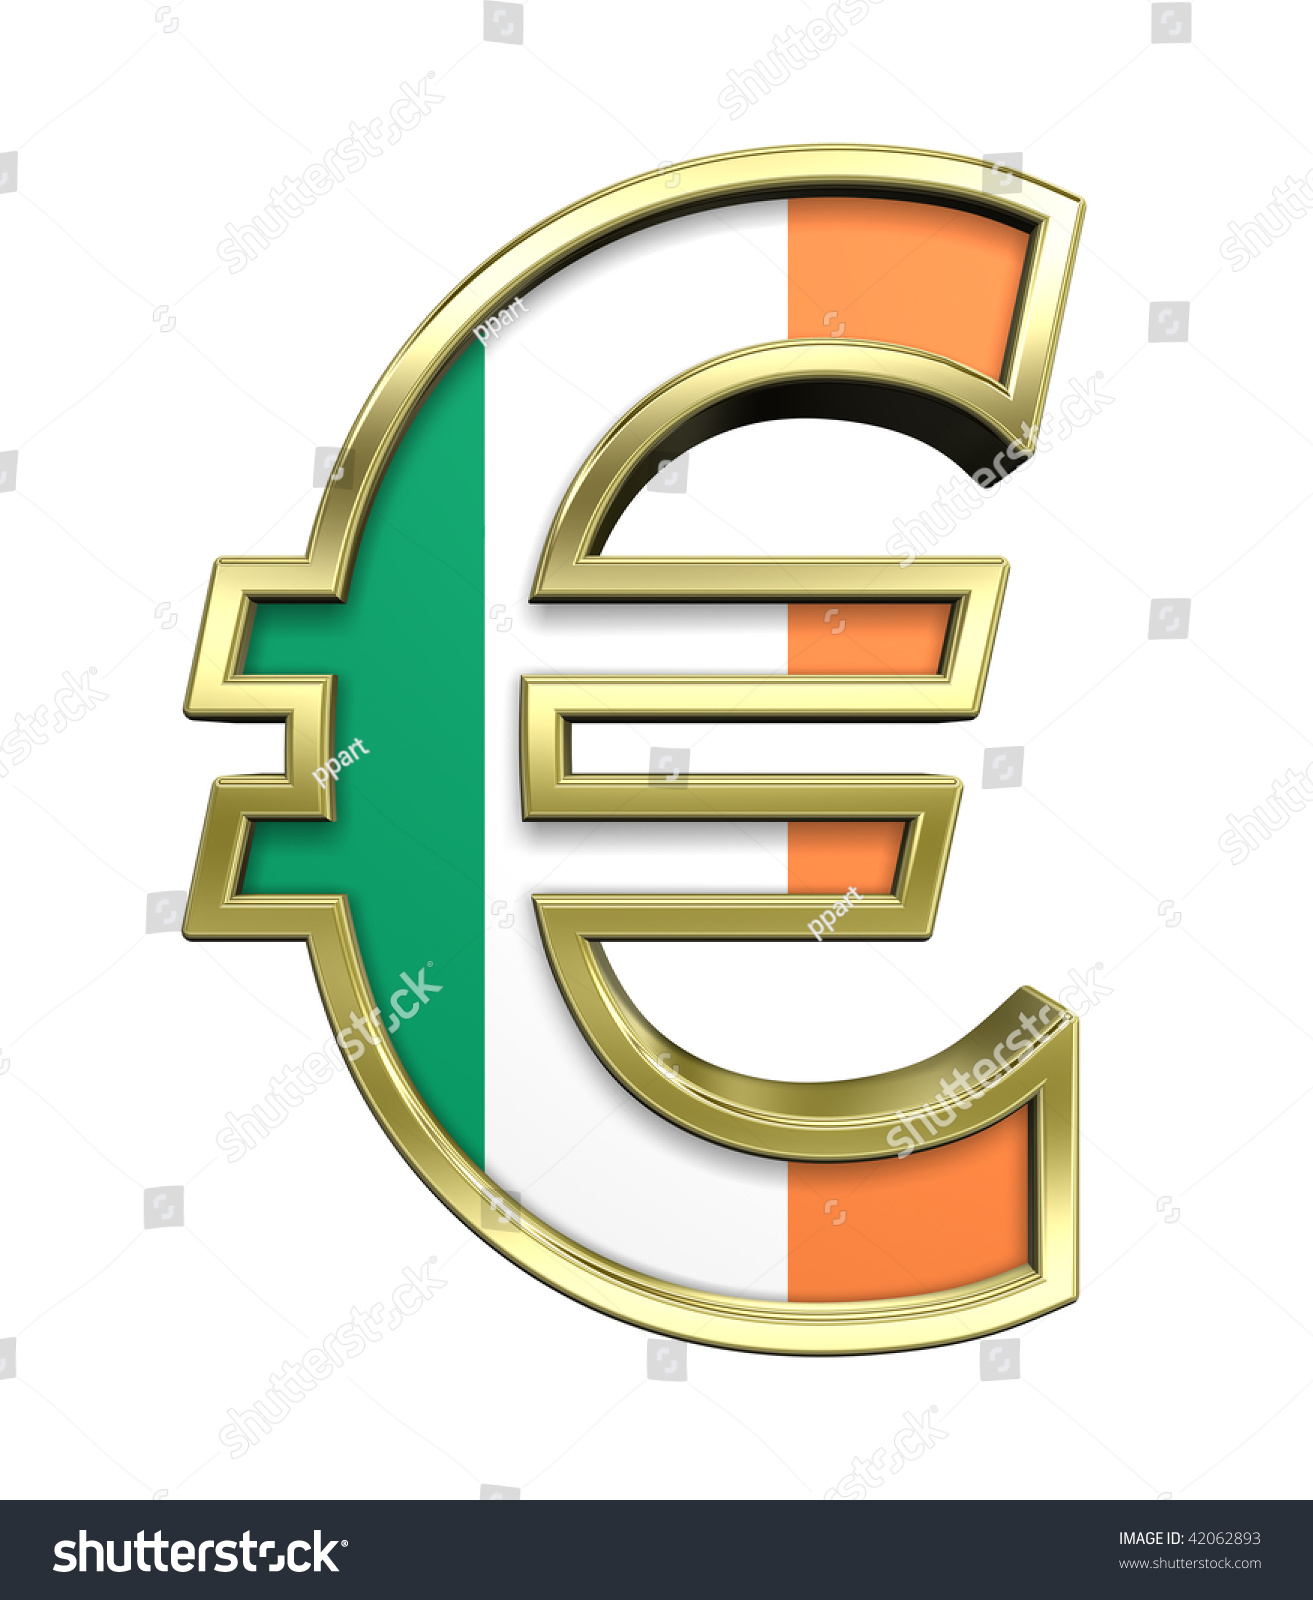 how to get euro sign on computer